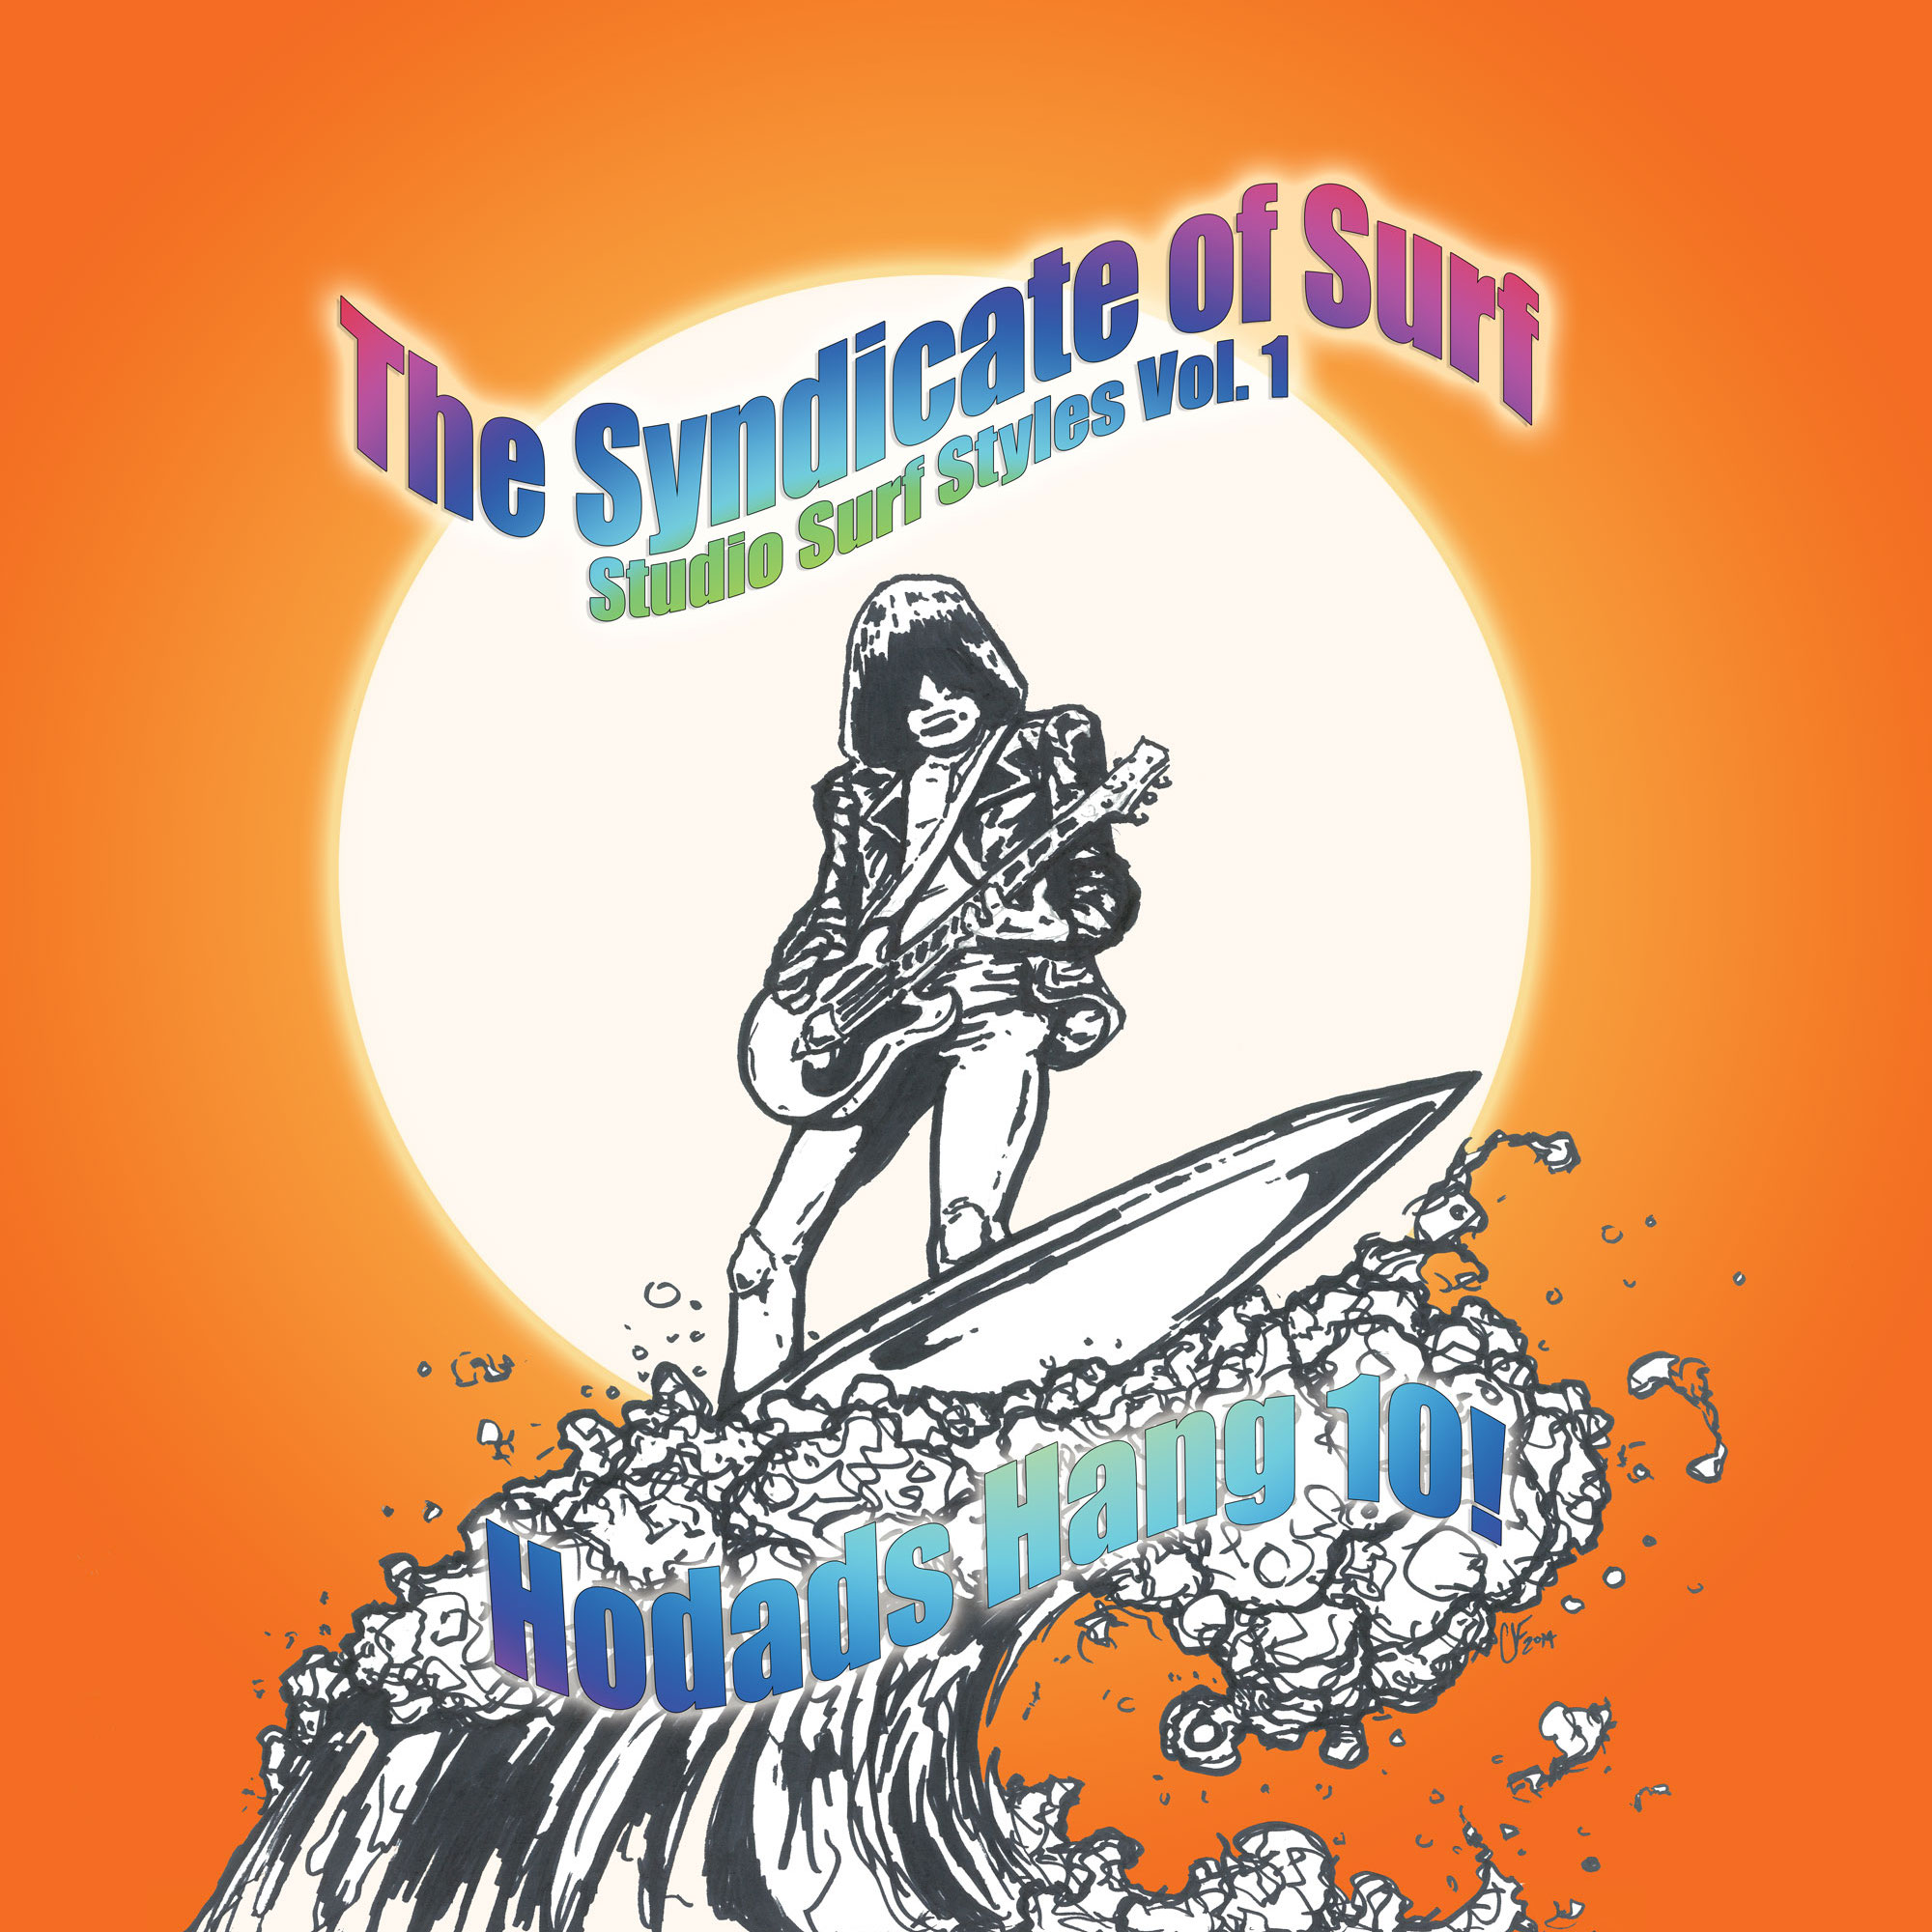 SRW007 The Syndicate of Surf - Studio Surf Styles Volume 1 Hodads Hang 10! (Digital Download) Image